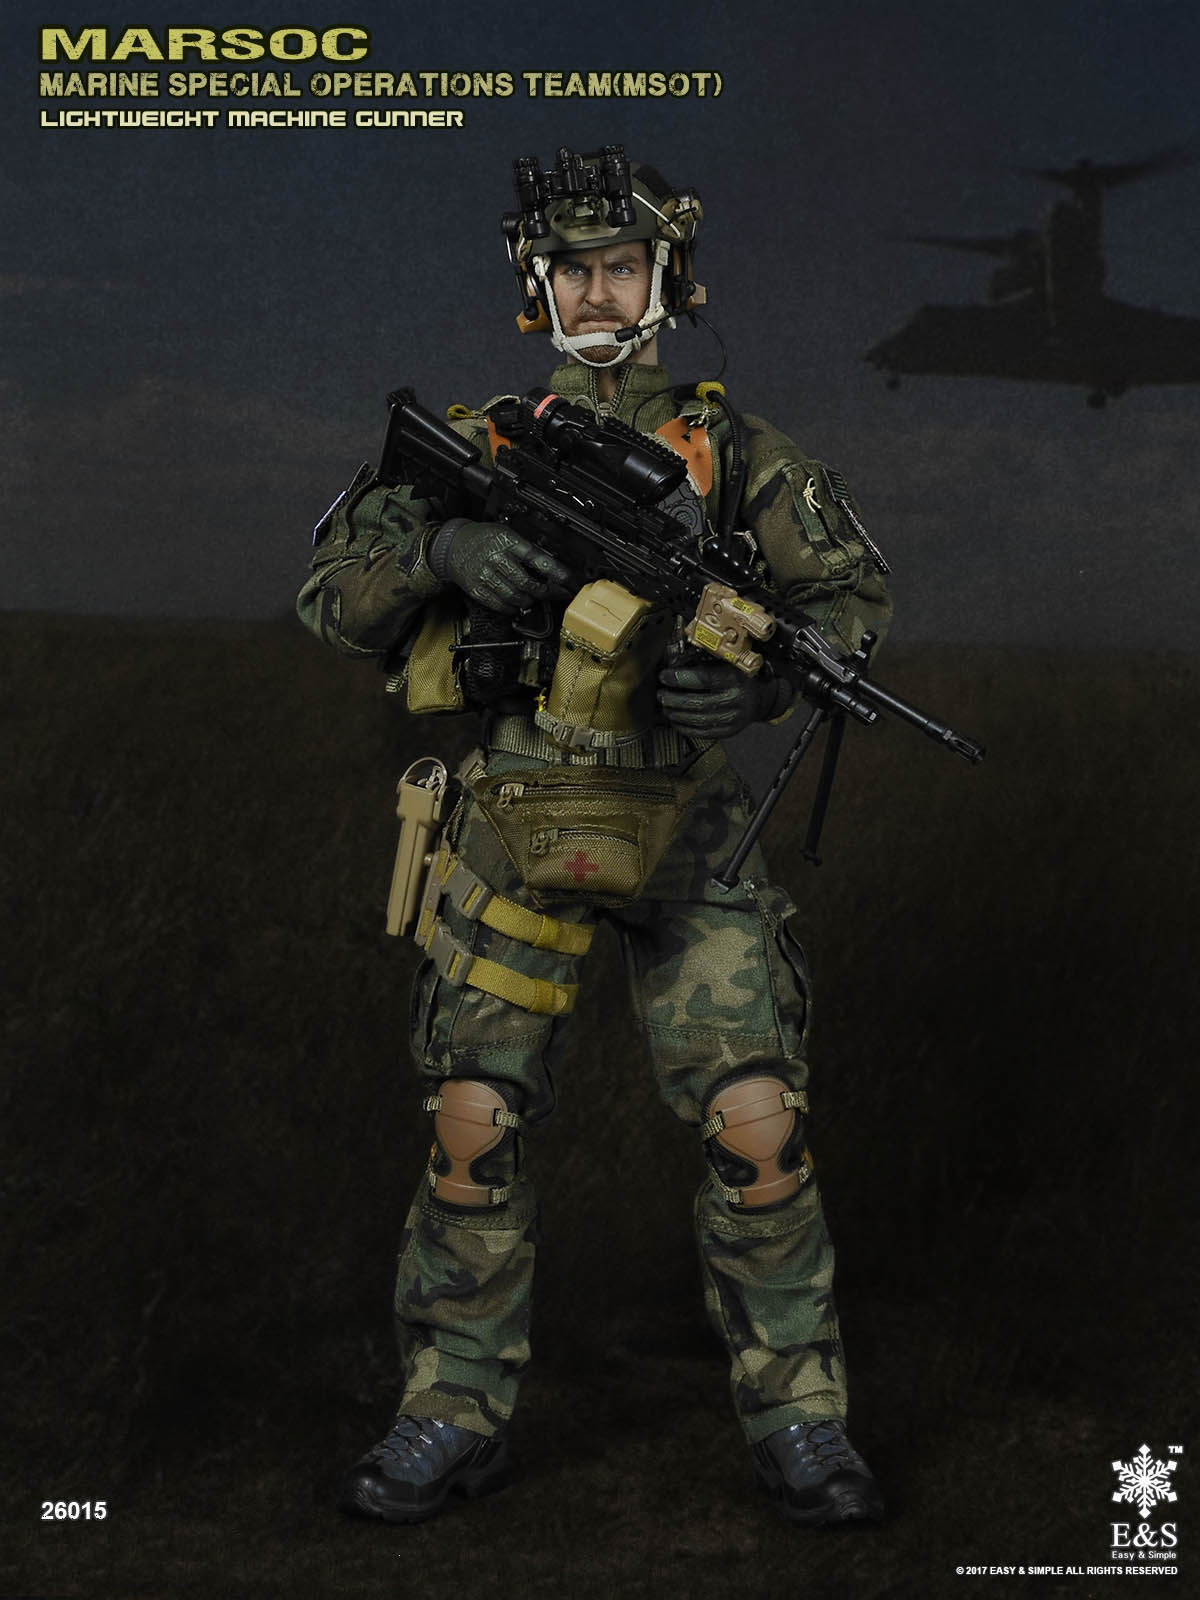 Easy&Simple 26015 MARSOC MSOT Lightweight Machine Gunner